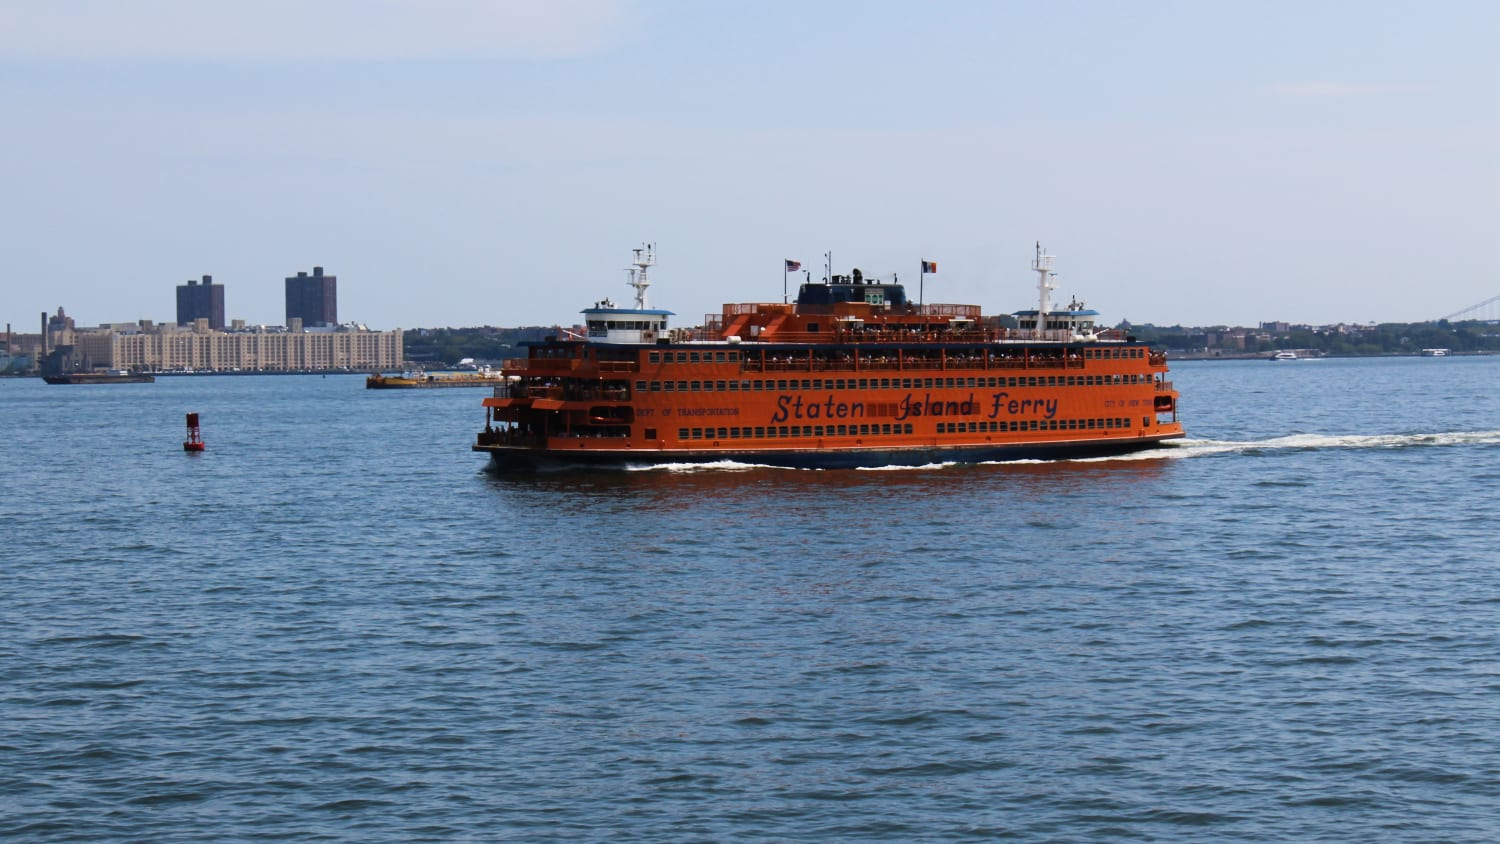 Top Things To Do In New York City- Staten Island Ferry